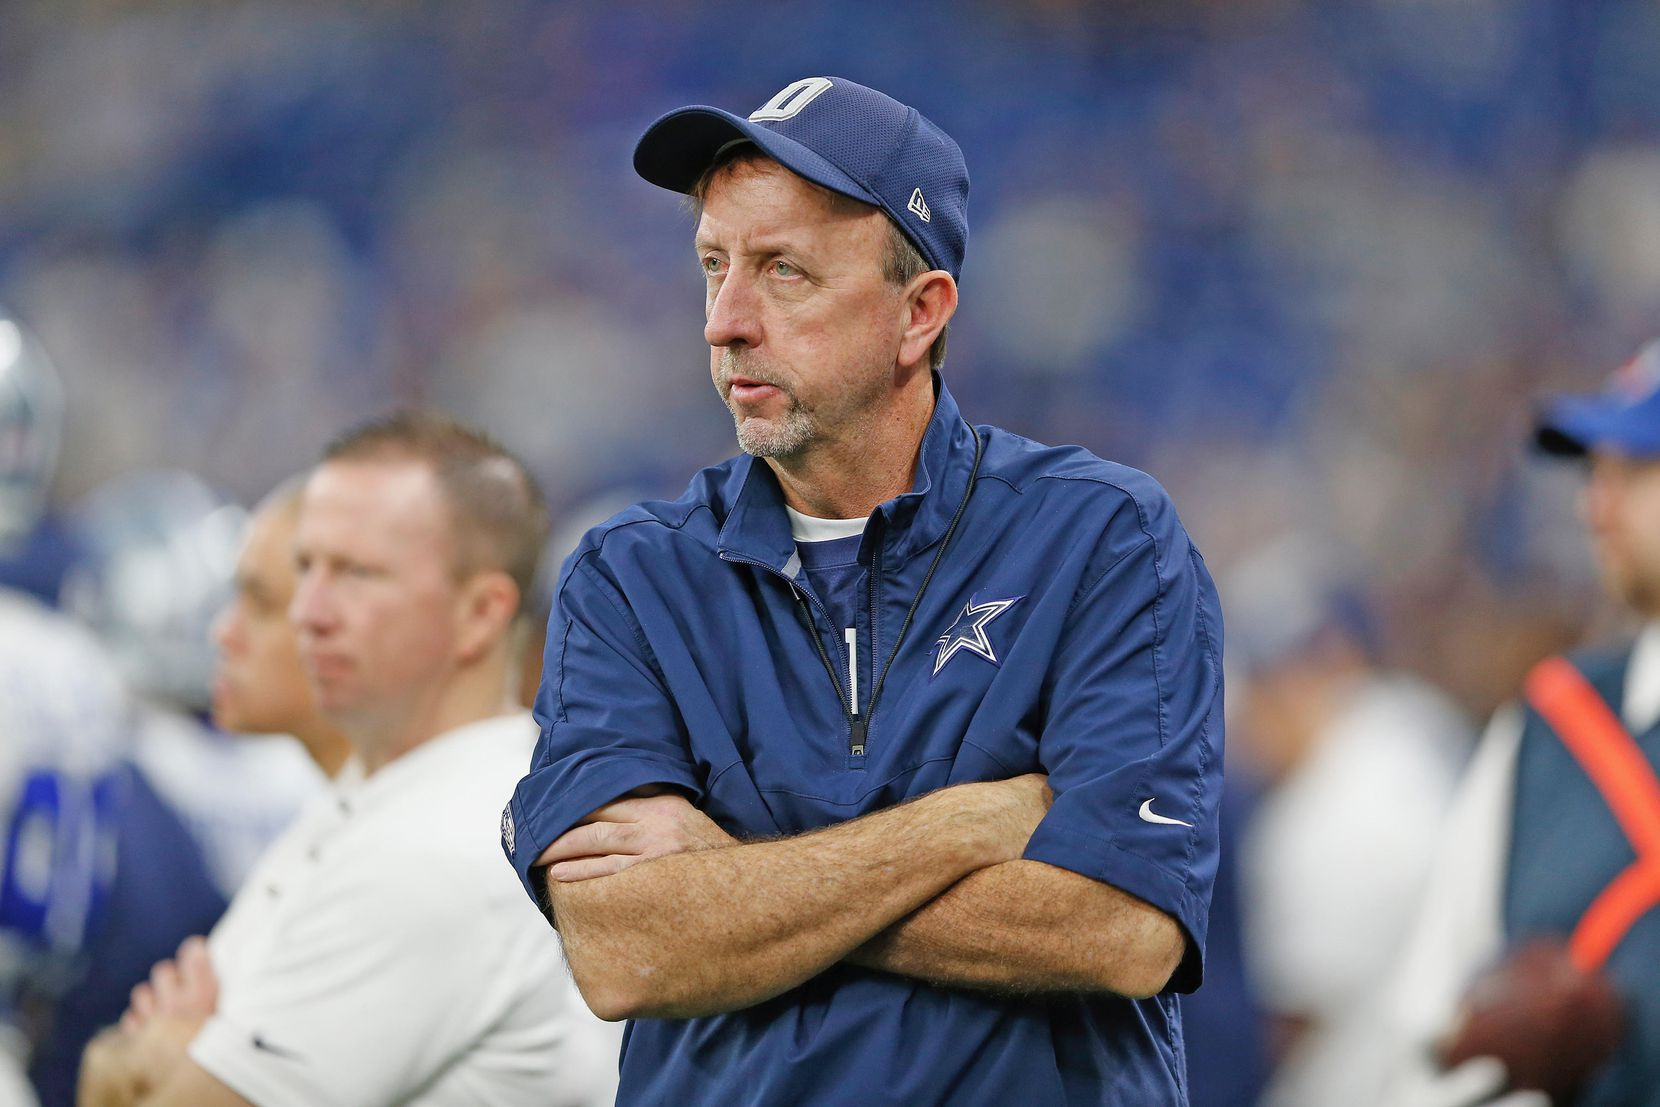 Cowboys equipment manager Mike McCord.  16 December 2018:   Mike McCord        of the Dallas Cowboys during their NFL week 15 regular season 23-0 loss to the Indianapolis Colts at Lucas Oil  Stadium in Indianapolis, Indiana. Photo by James D. Smith/Dallas Cowboys